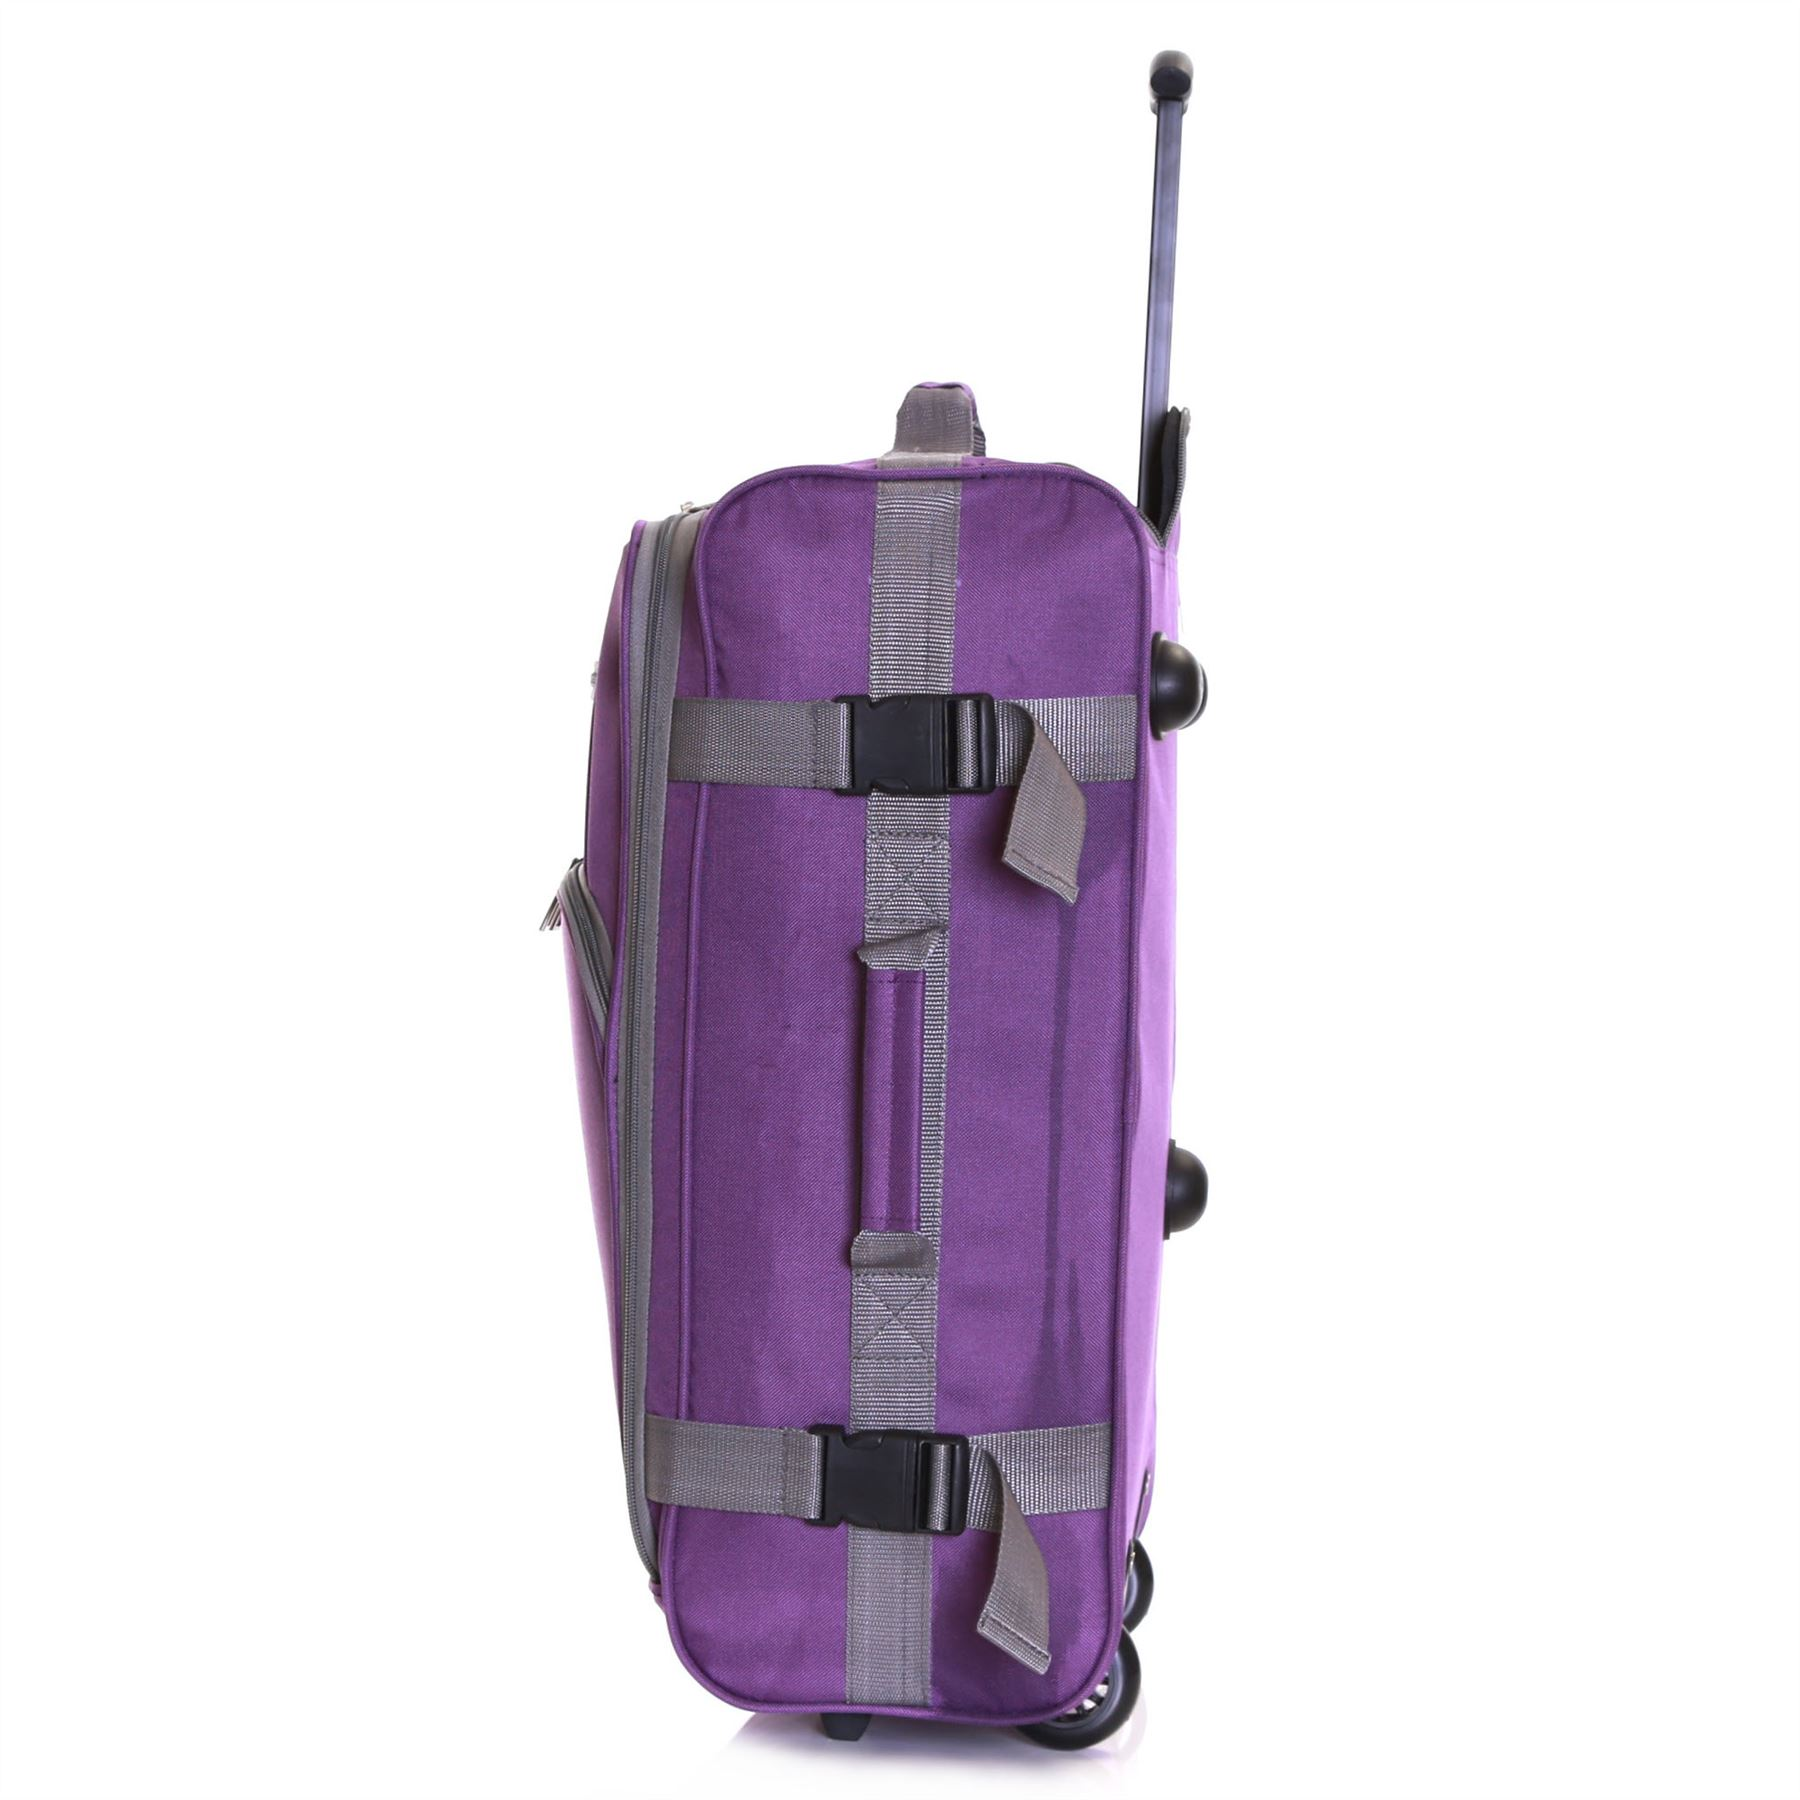 Ryanair-Easyjet-Set-of-2-Cabin-Approved-Hand-Trolley-Suitcases-Luggage-Case-Bags thumbnail 12